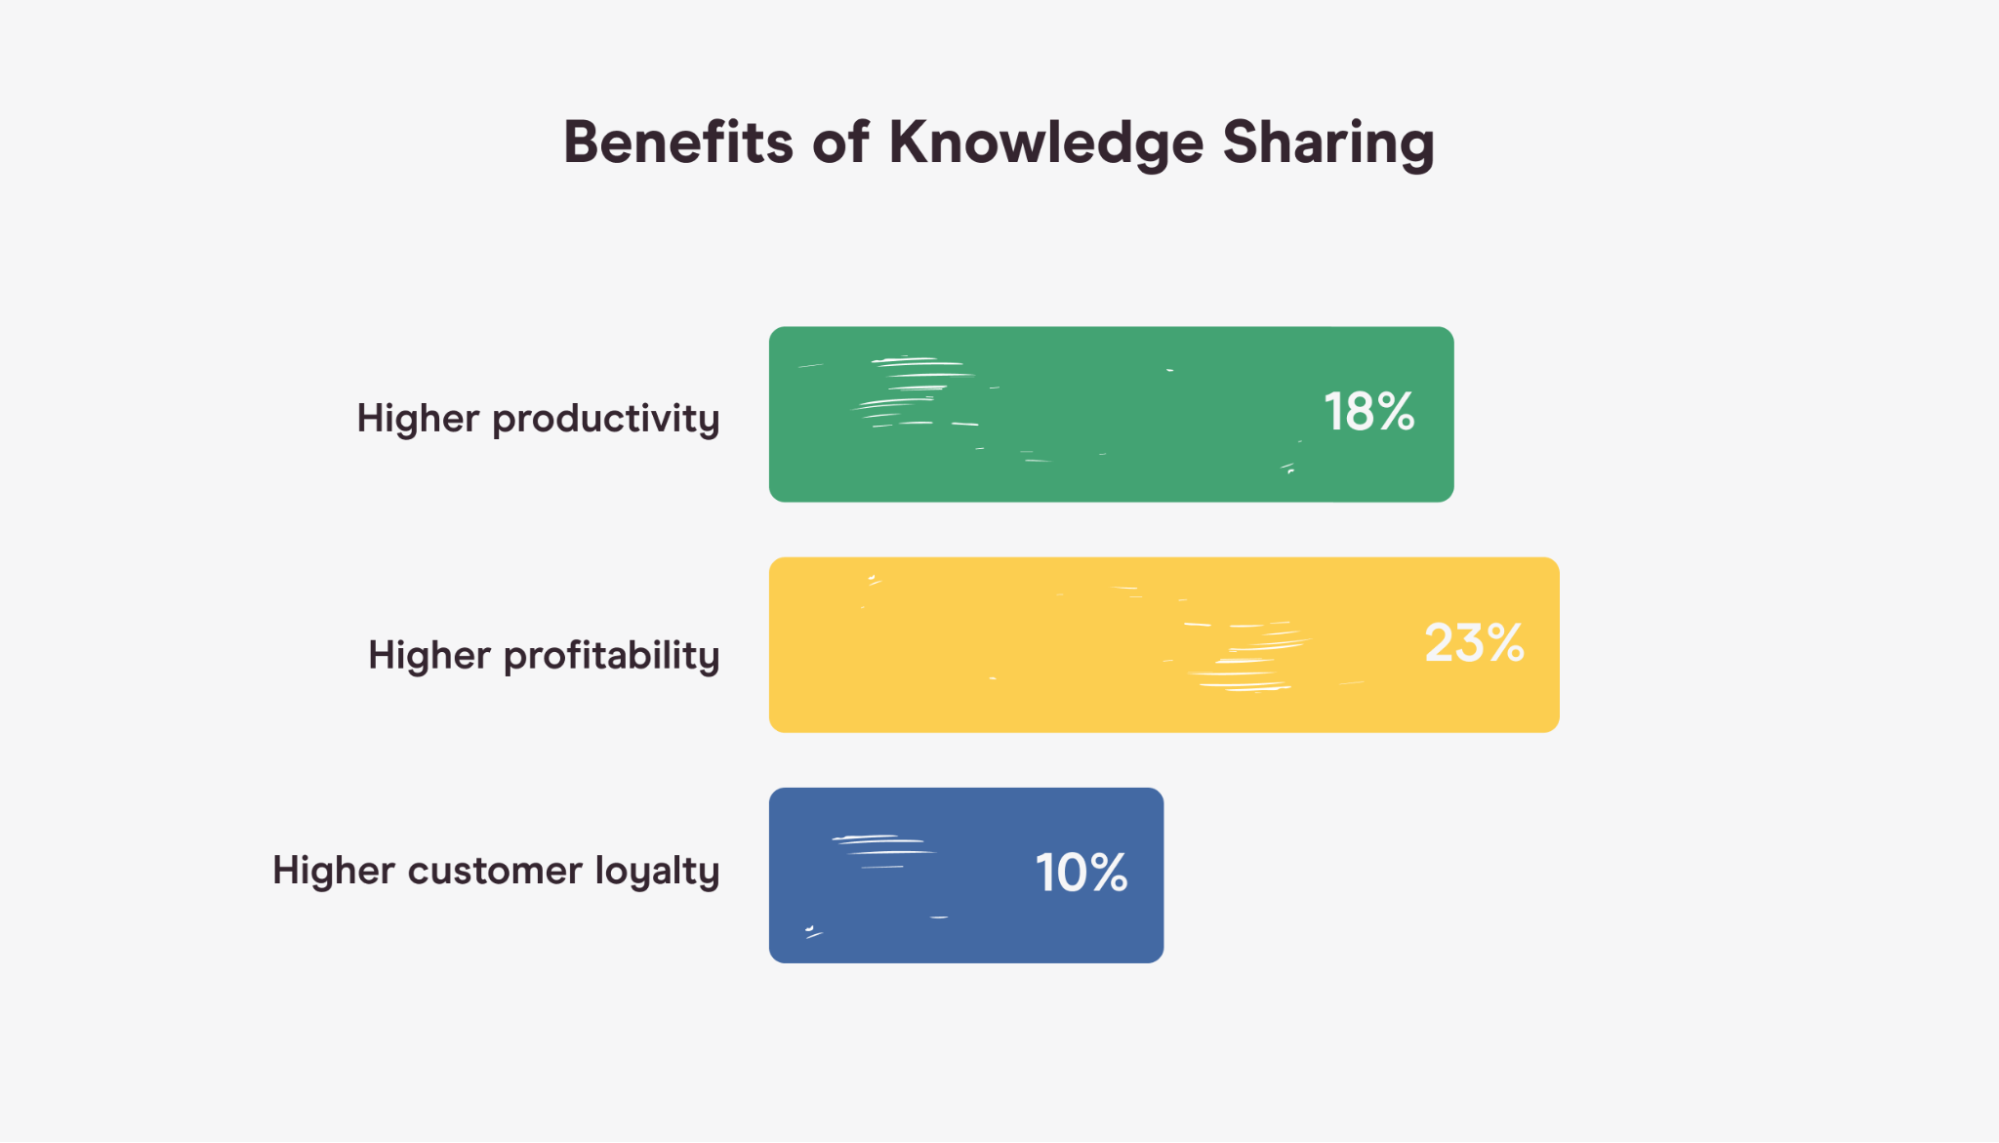 chart showing impact of knowledge sharing on productivity, profitability, and loyalty